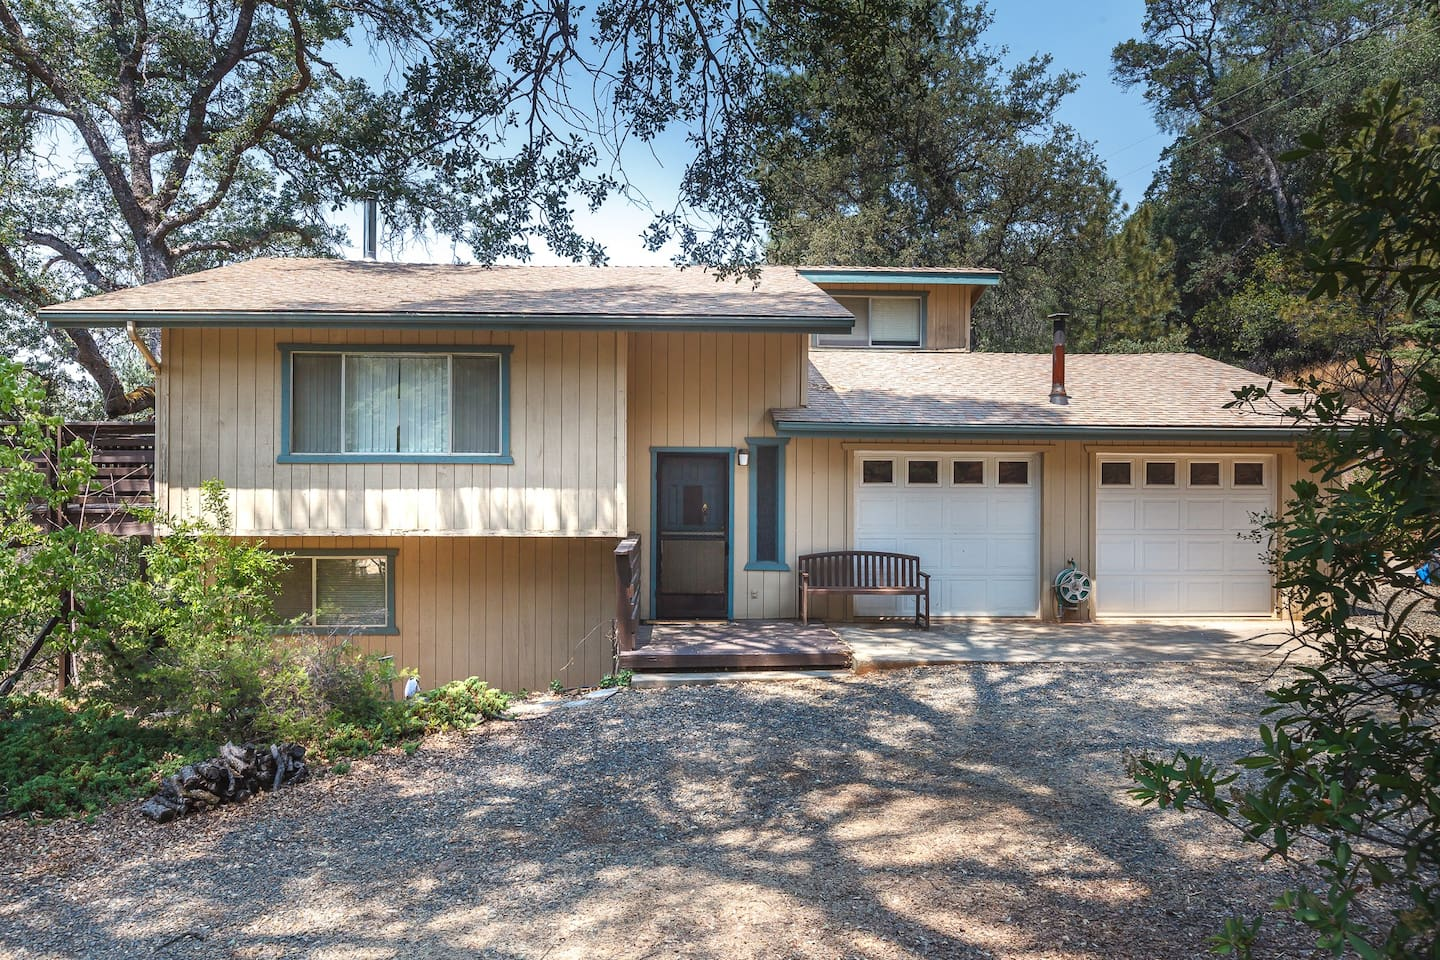 Lovely home very close to Highway 140 year round Highway into Yosemite National Park